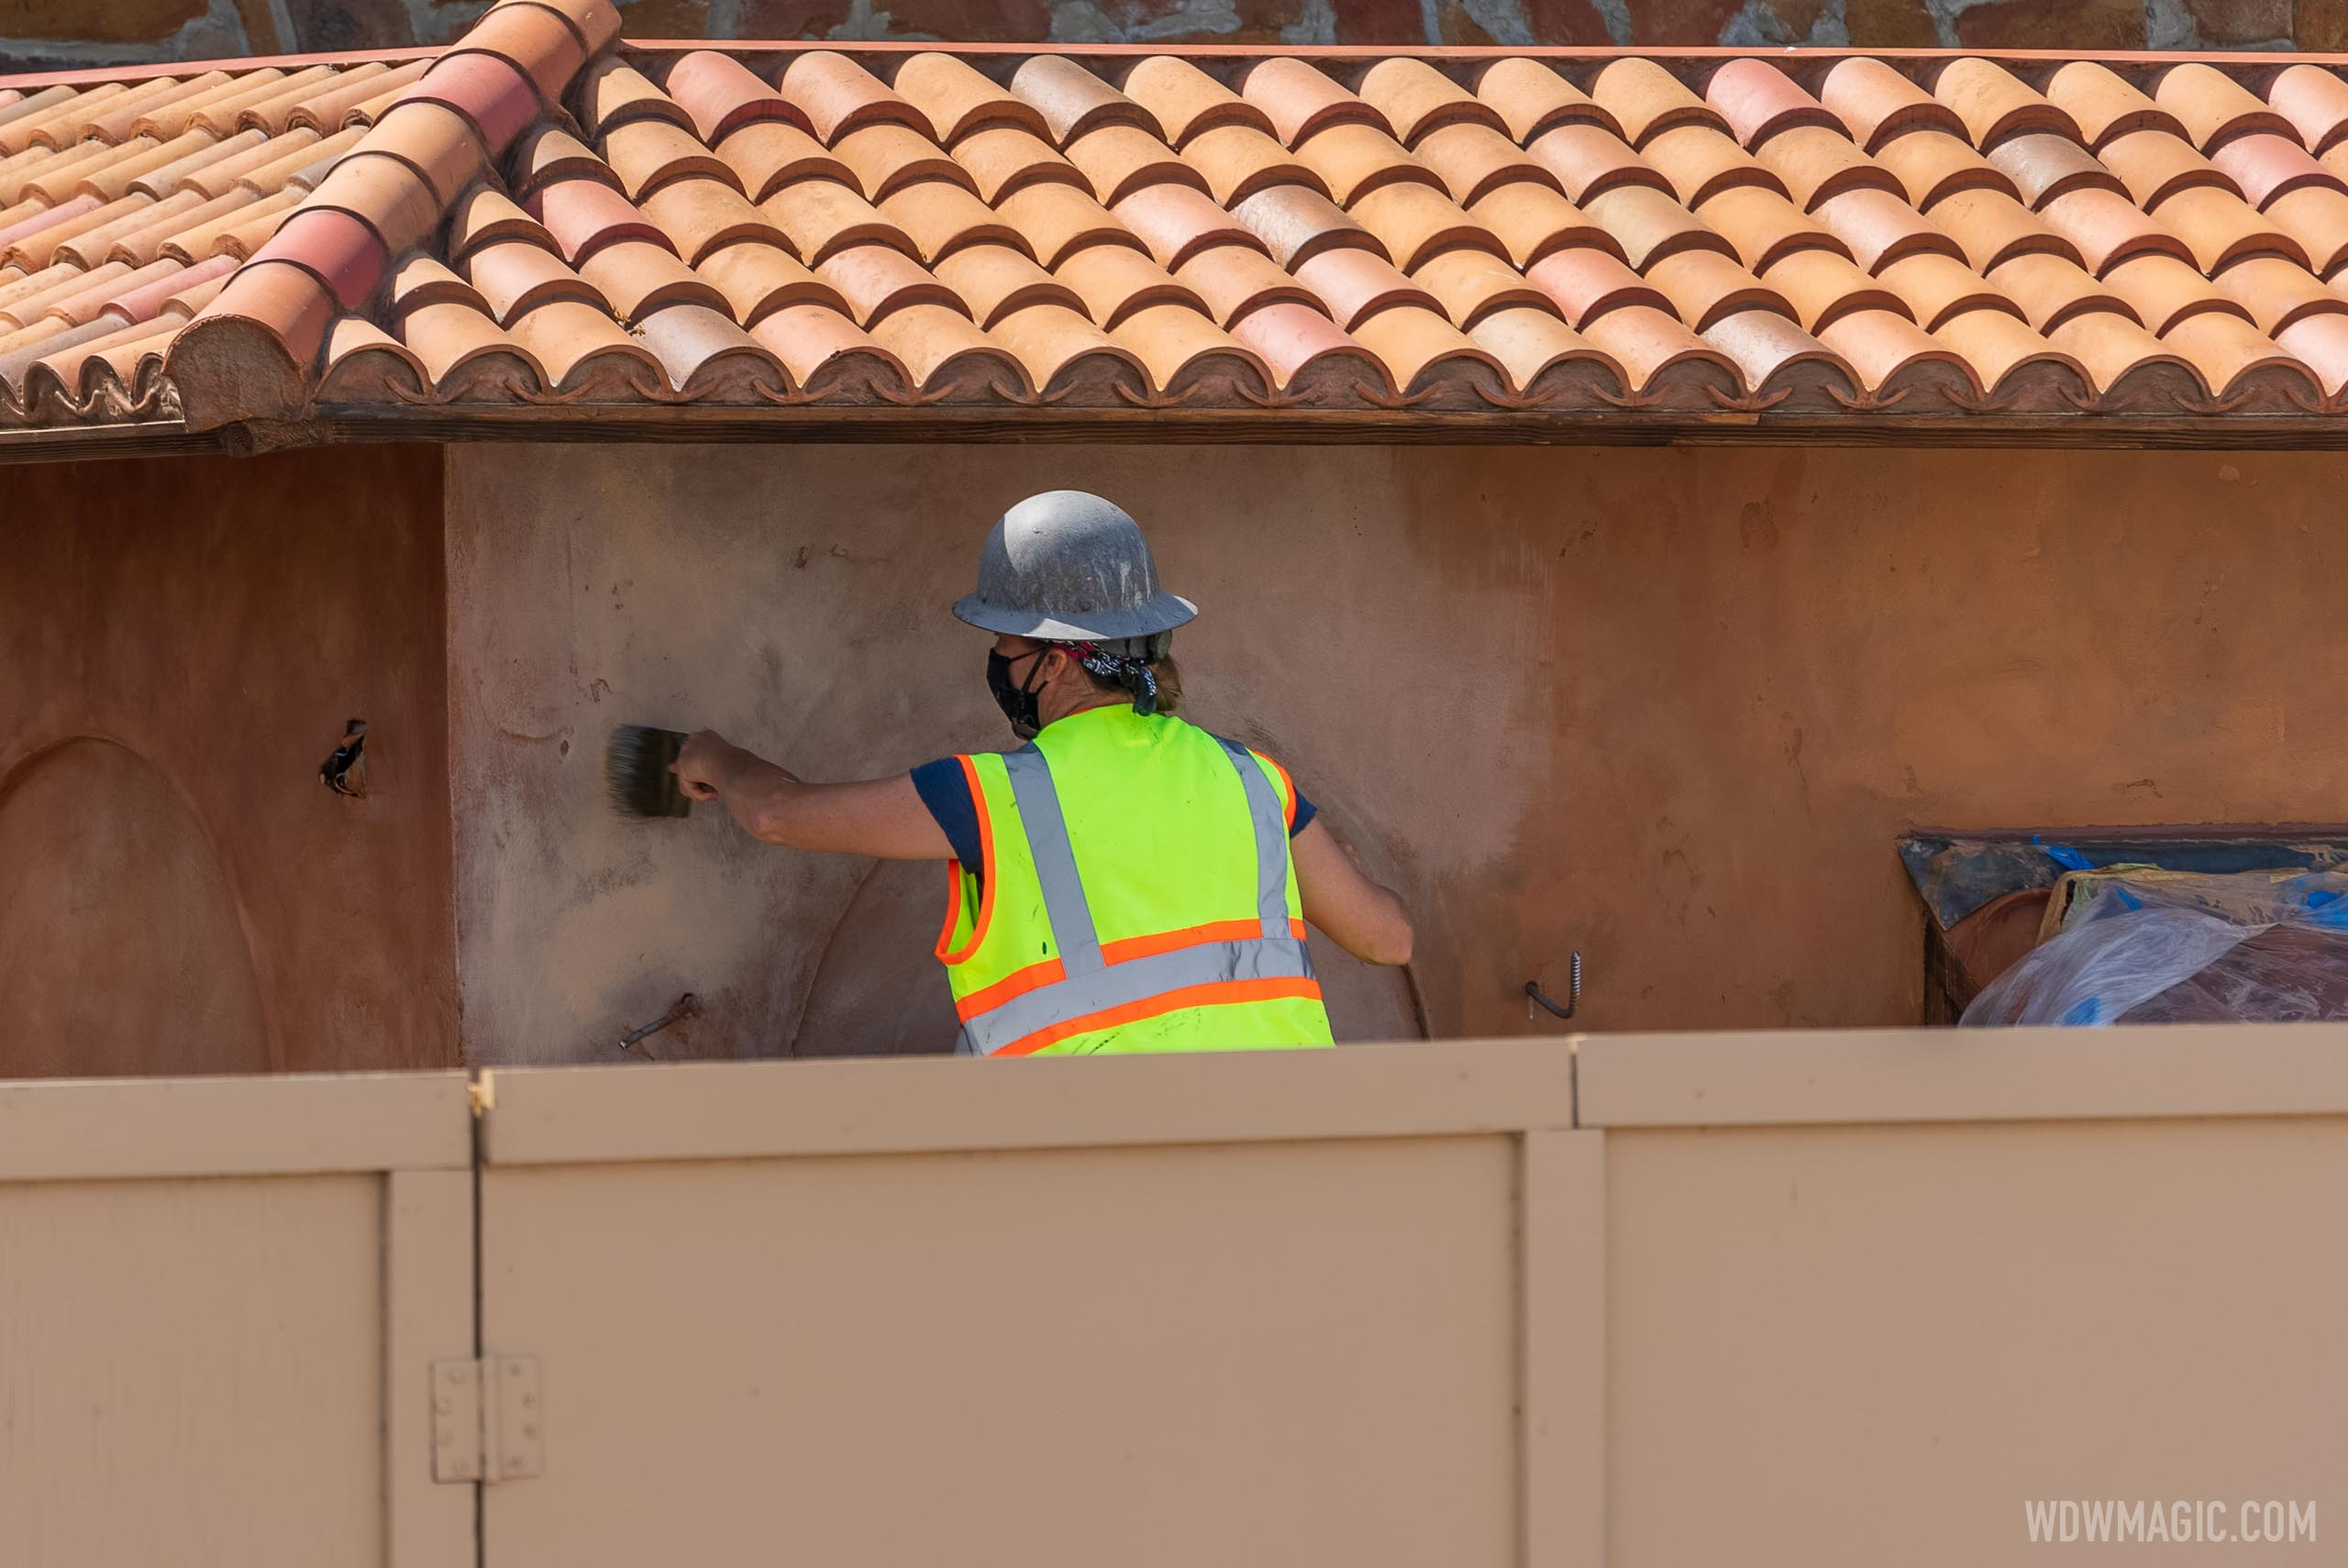 La Gelateria construction continues at EPCOT'S Italy pavilion